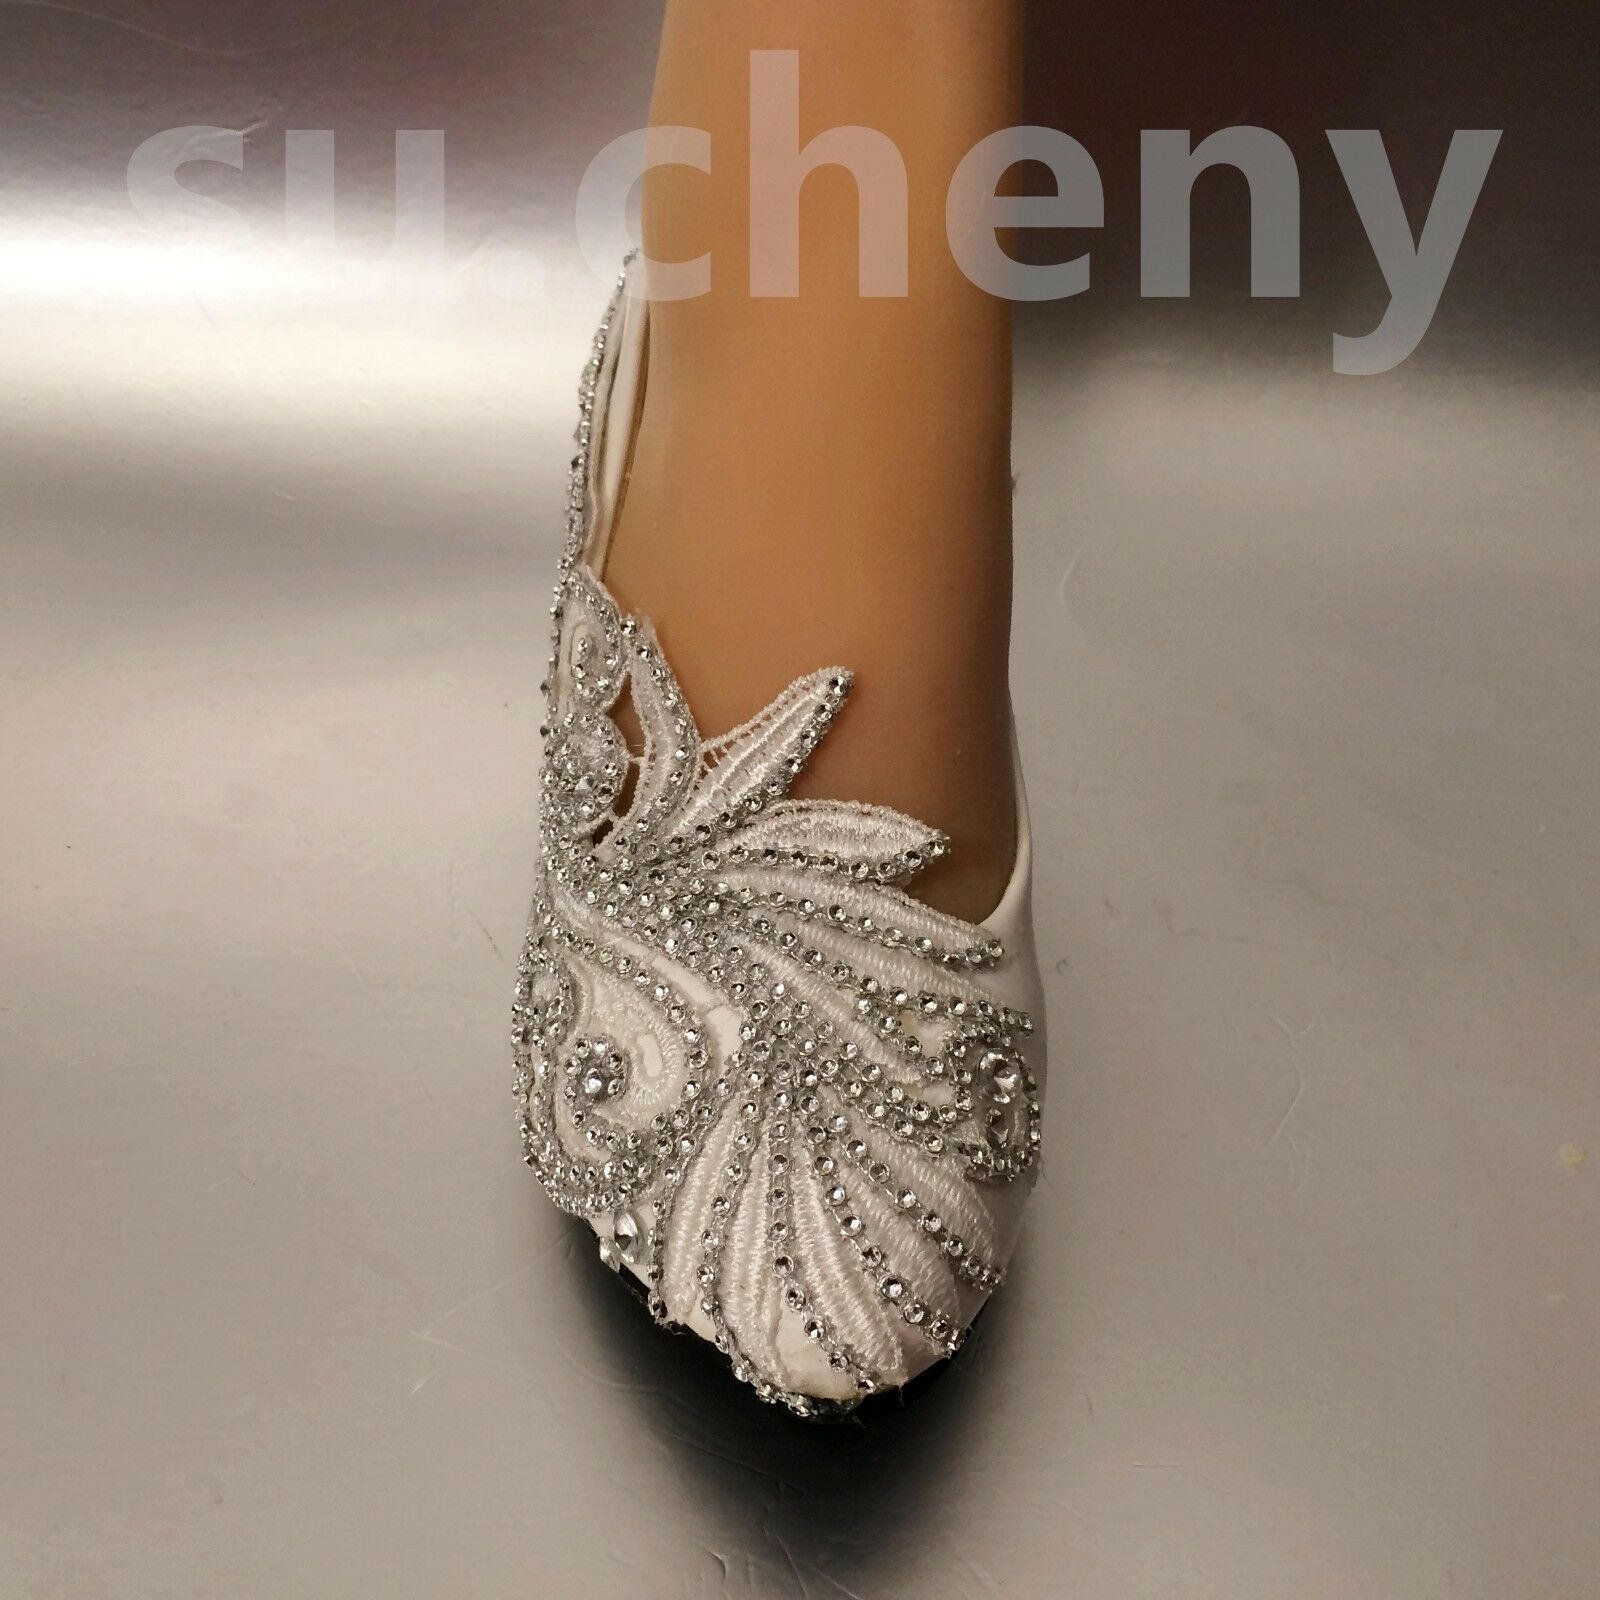 Su.cheny Weiß Wedge low high heels Lace crystal Weiß Su.cheny ivory pump Wedding Bridal schuhe 3e3f80